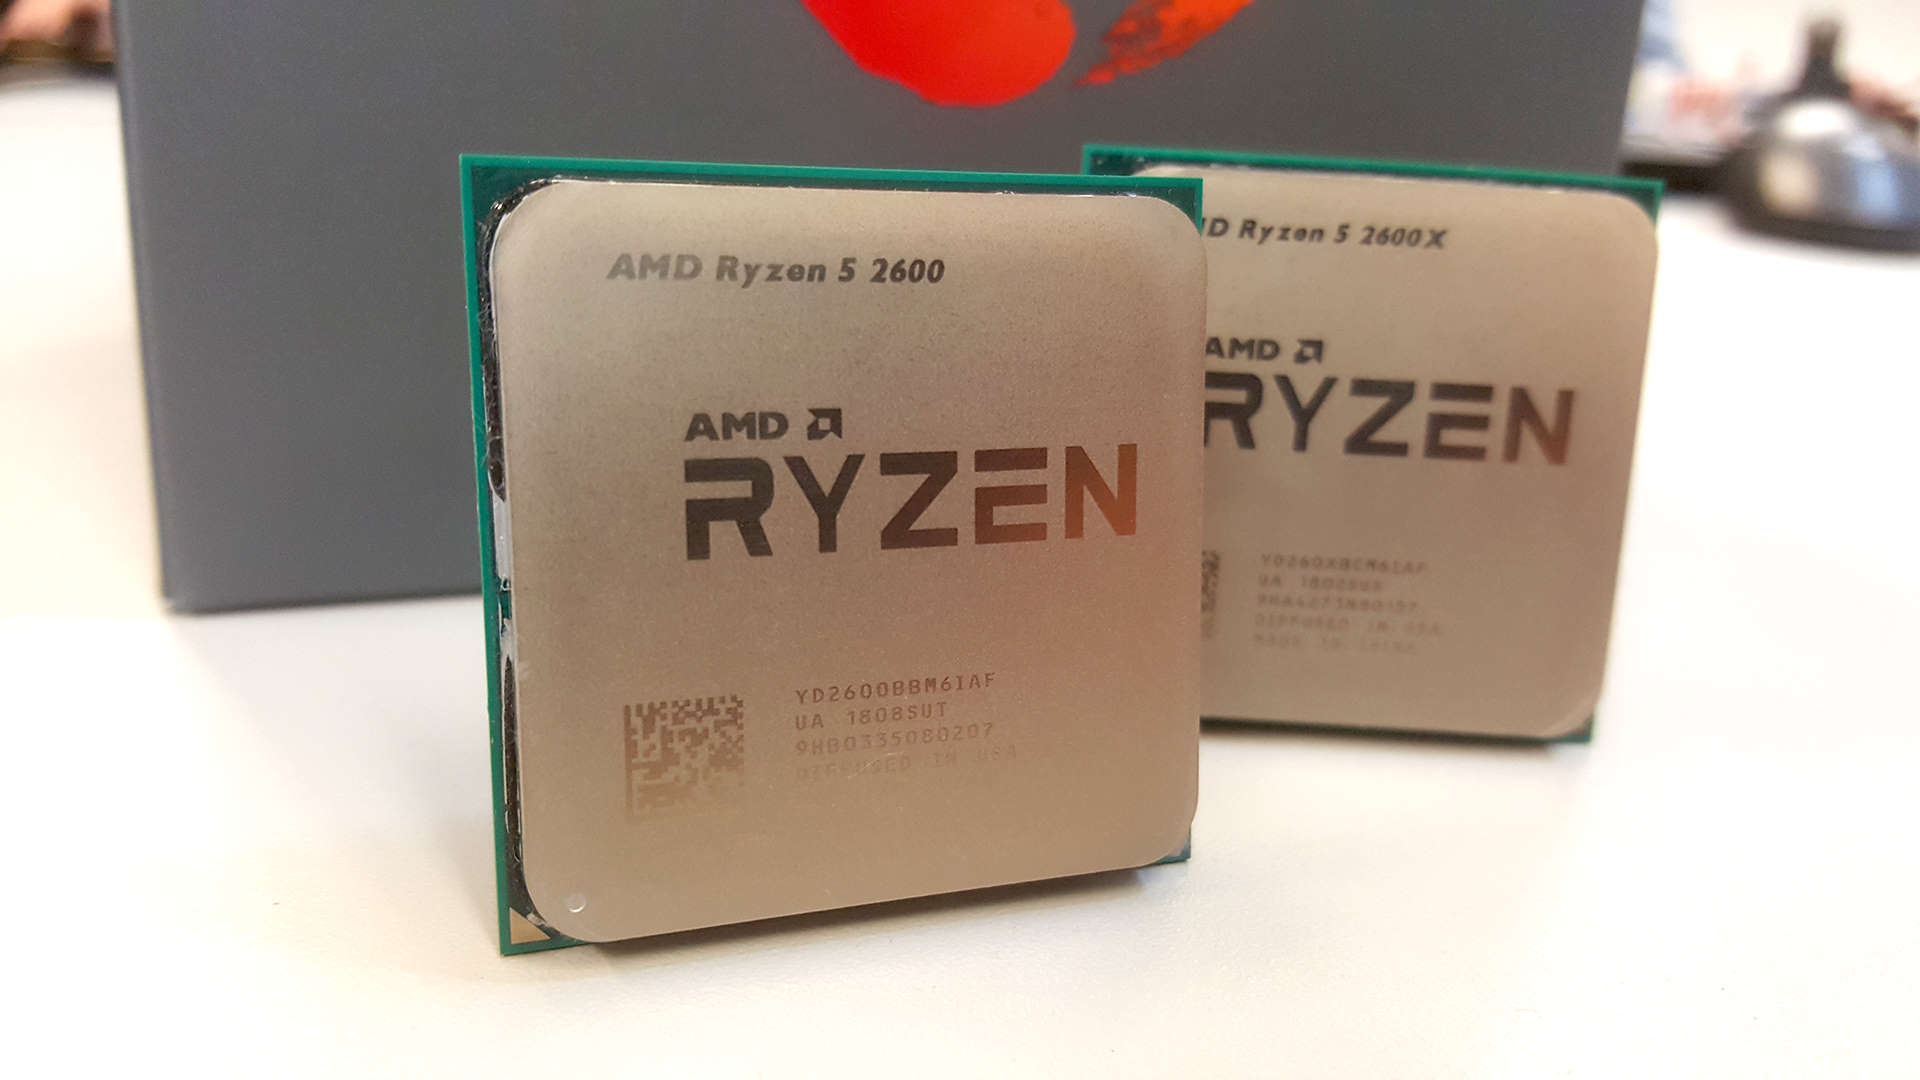 You can soon get AMD's Ryzen 5000 APUs without buying a full gaming PC